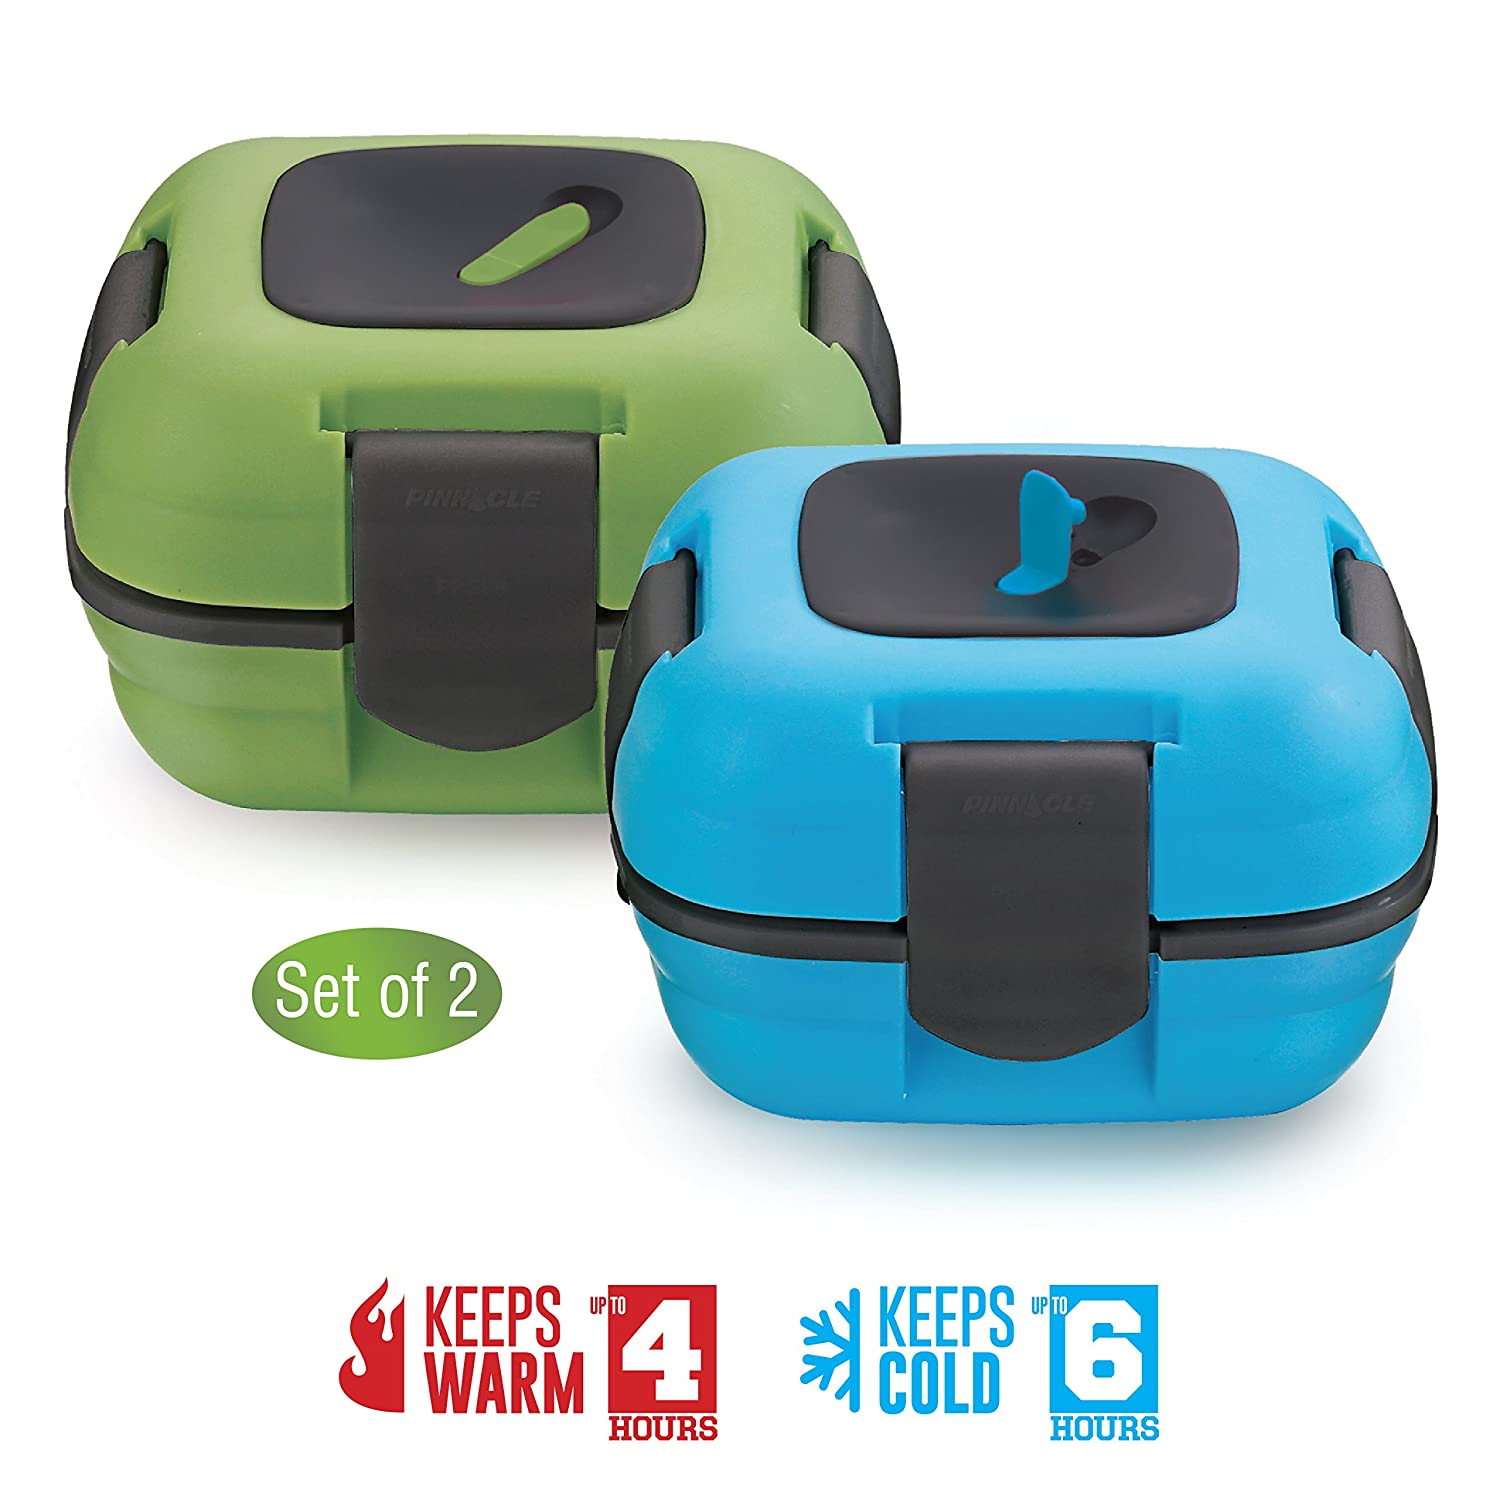 Lunch Box ~ Pinnacle Insulated Leak Proof Lunch Box for Adults and Kids - Thermal Lunch Container With NEW Heat Release Valve ~Set of 2~Blue/Green 16 oz ea Pinnacle Thermoware COMIN18JU065013